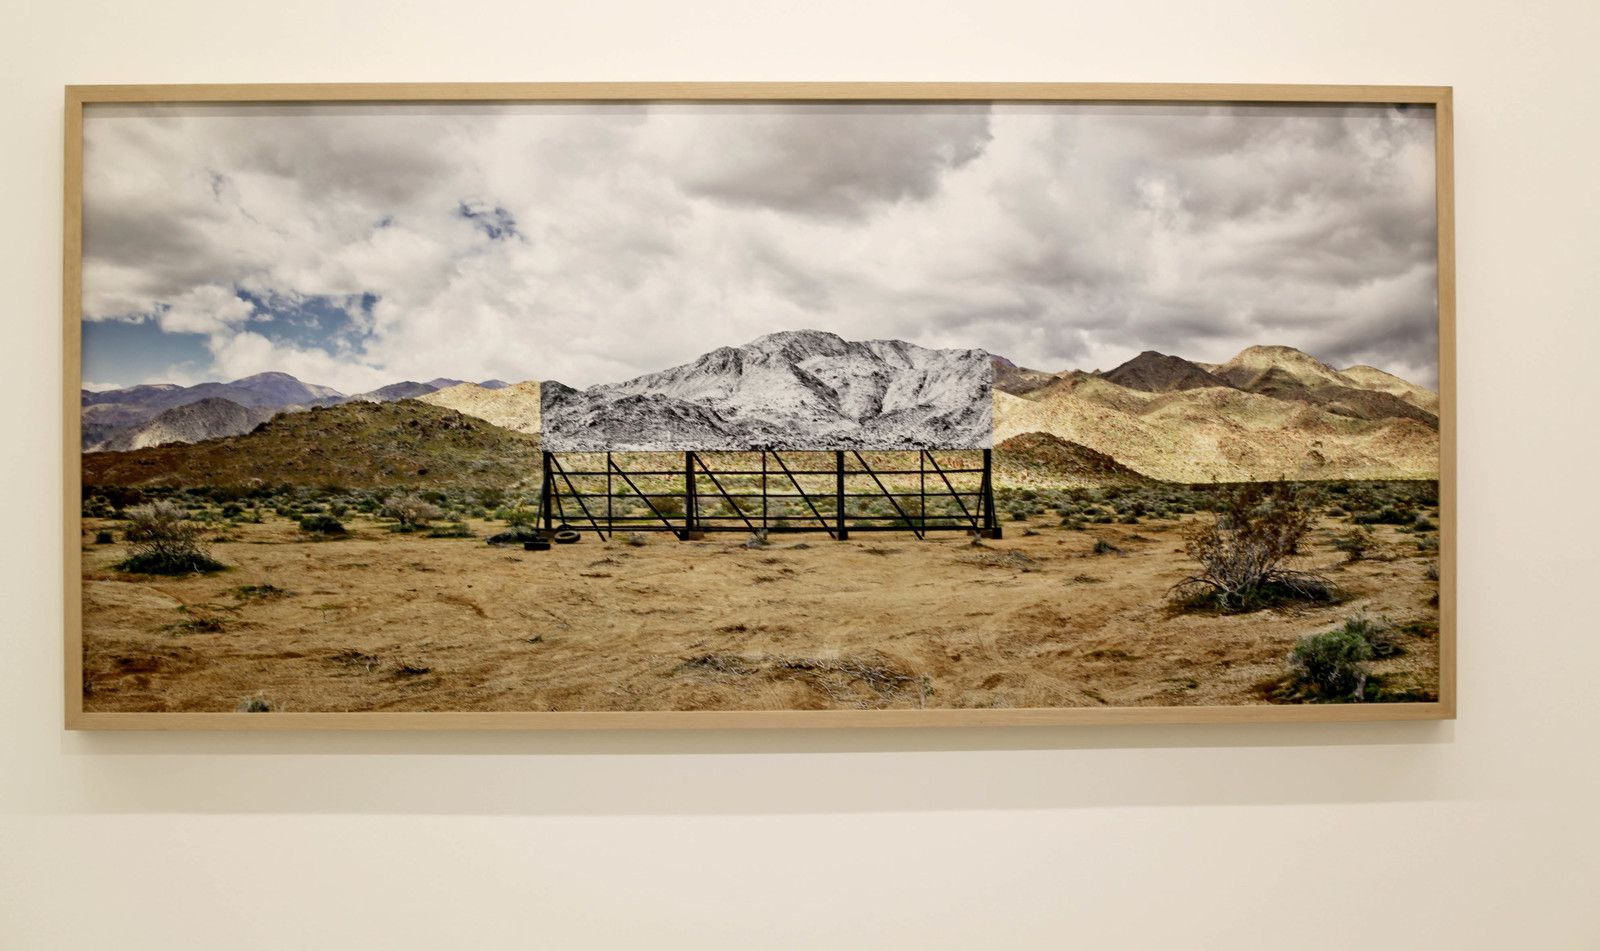 """Tehachapi, Mountain, Pentaptych, U.S.A."", 2019 de JR - Courtesy Galerie Perrotin © Photo Éric Simon"